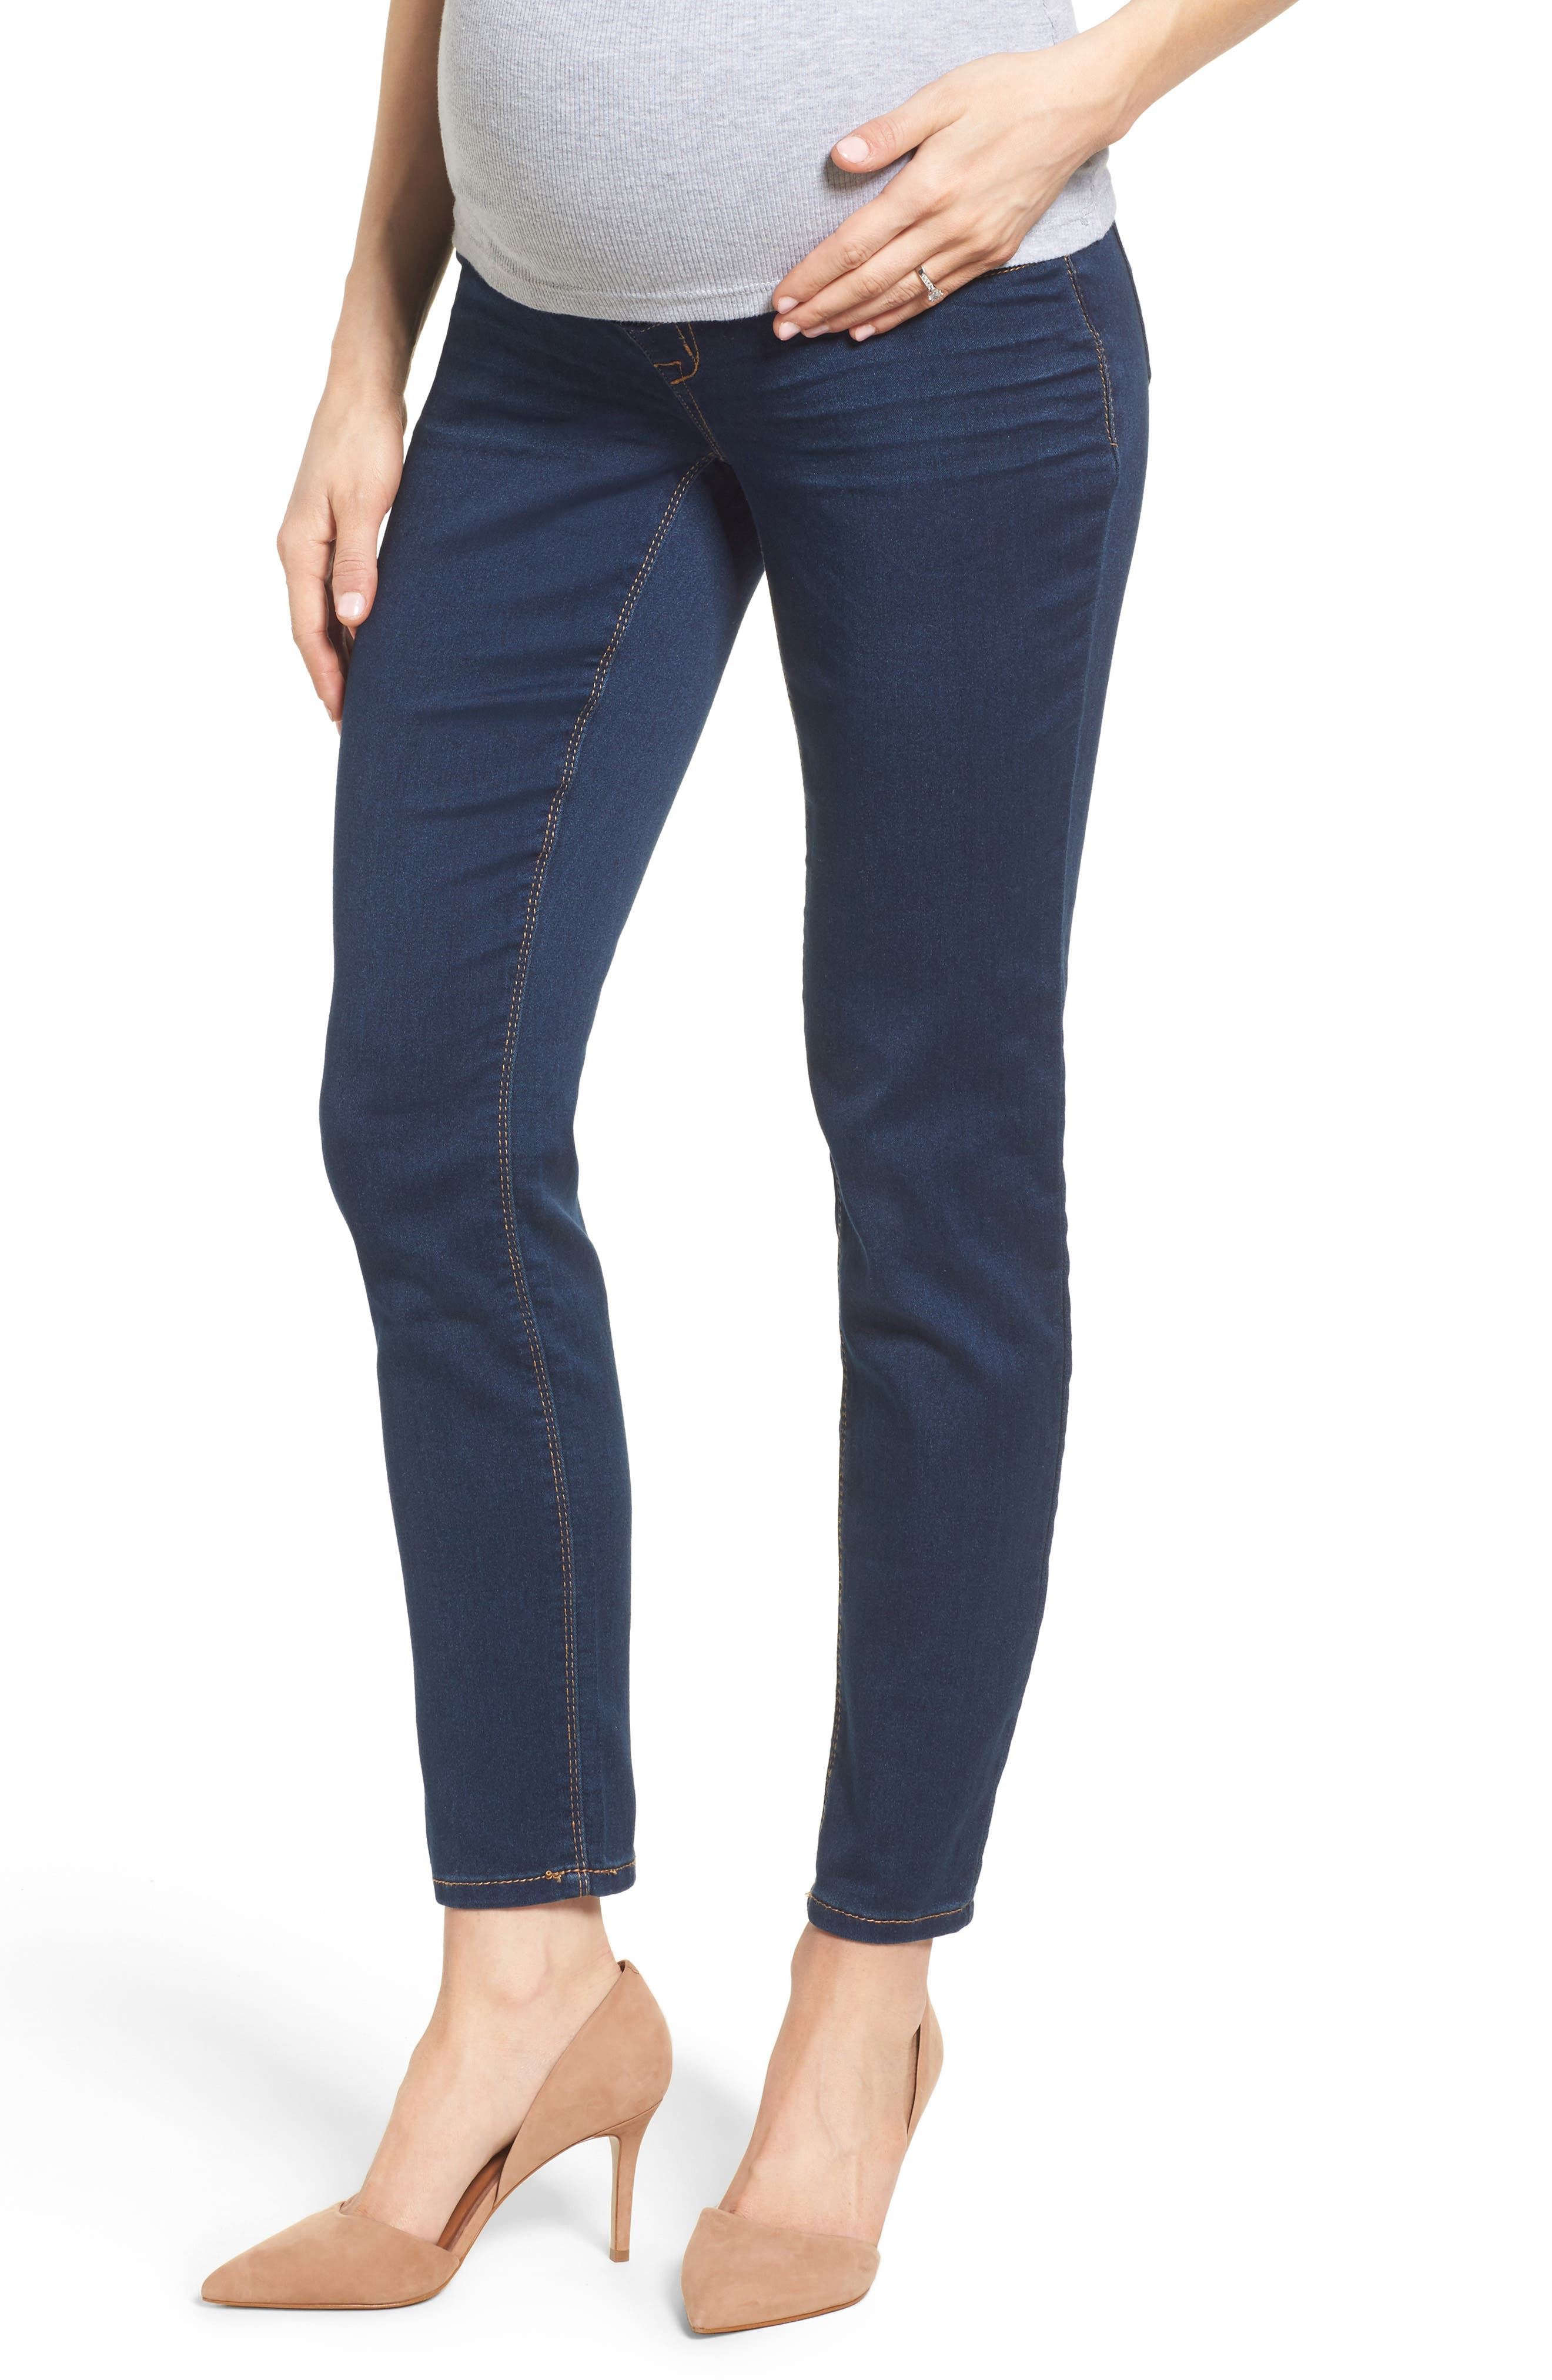 Butter Maternity Skinny Jeans,                         Main,                         color, 400